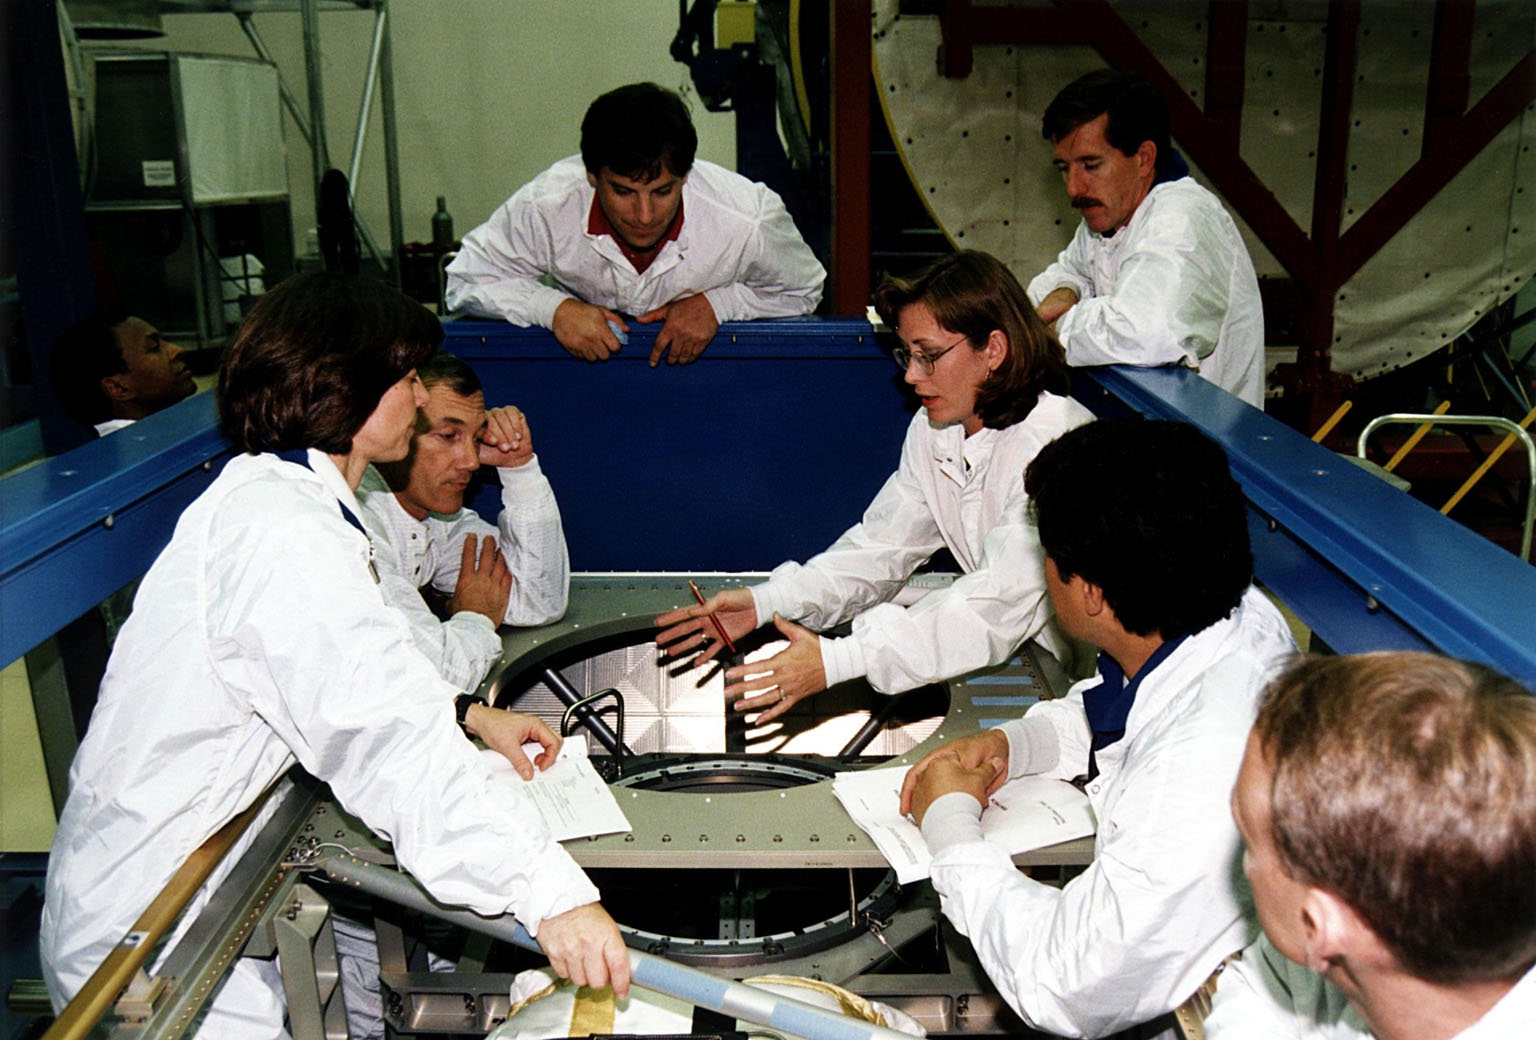 KENNEDY SPACE CENTER, FLA. -- STS-89 crew members participate with trainers in the Crew Equipment Interface Test (CEIT) at the SPACEHAB Payload Processing Facility at Port Canaveral in preparation for the mission, slated to be the first Shuttle launch of 1998. The CEIT gives astronauts an opportunity to get a hands-on look at the payloads with which they will be working on-orbit. From left to right are Mission Specialists Michael Anderson and Bonnie Dunbar, Ph.D.; Commander Terry Wilcutt; Boeing SPACEHAB Operations Engineer Jim Behling; Boeing SPACEHAB Crew Trainer Laura Keiser; an unidentified staff member (with mustache); Mission Specialist Salizhan Sharipov of the Russian Space Agency; and Pilot Joe Edwards. STS-89 will be the eighth of nine scheduled Mir dockings and will include a double module of SPACEHAB, used mainly as a large pressurized cargo container for science, logistical equipment and supplies to be exchanged between the orbiter Endeavour and the Russian Space Station Mir. The nineday flight of STS-89 also is scheduled to include the transfer of the seventh American to live and work aboard the Russian orbiting outpost. Liftoff of Endeavour and its sevenmember crew is targeted for Jan. 15, 1998, at 1:03 a.m. EST from Launch Pad 39A